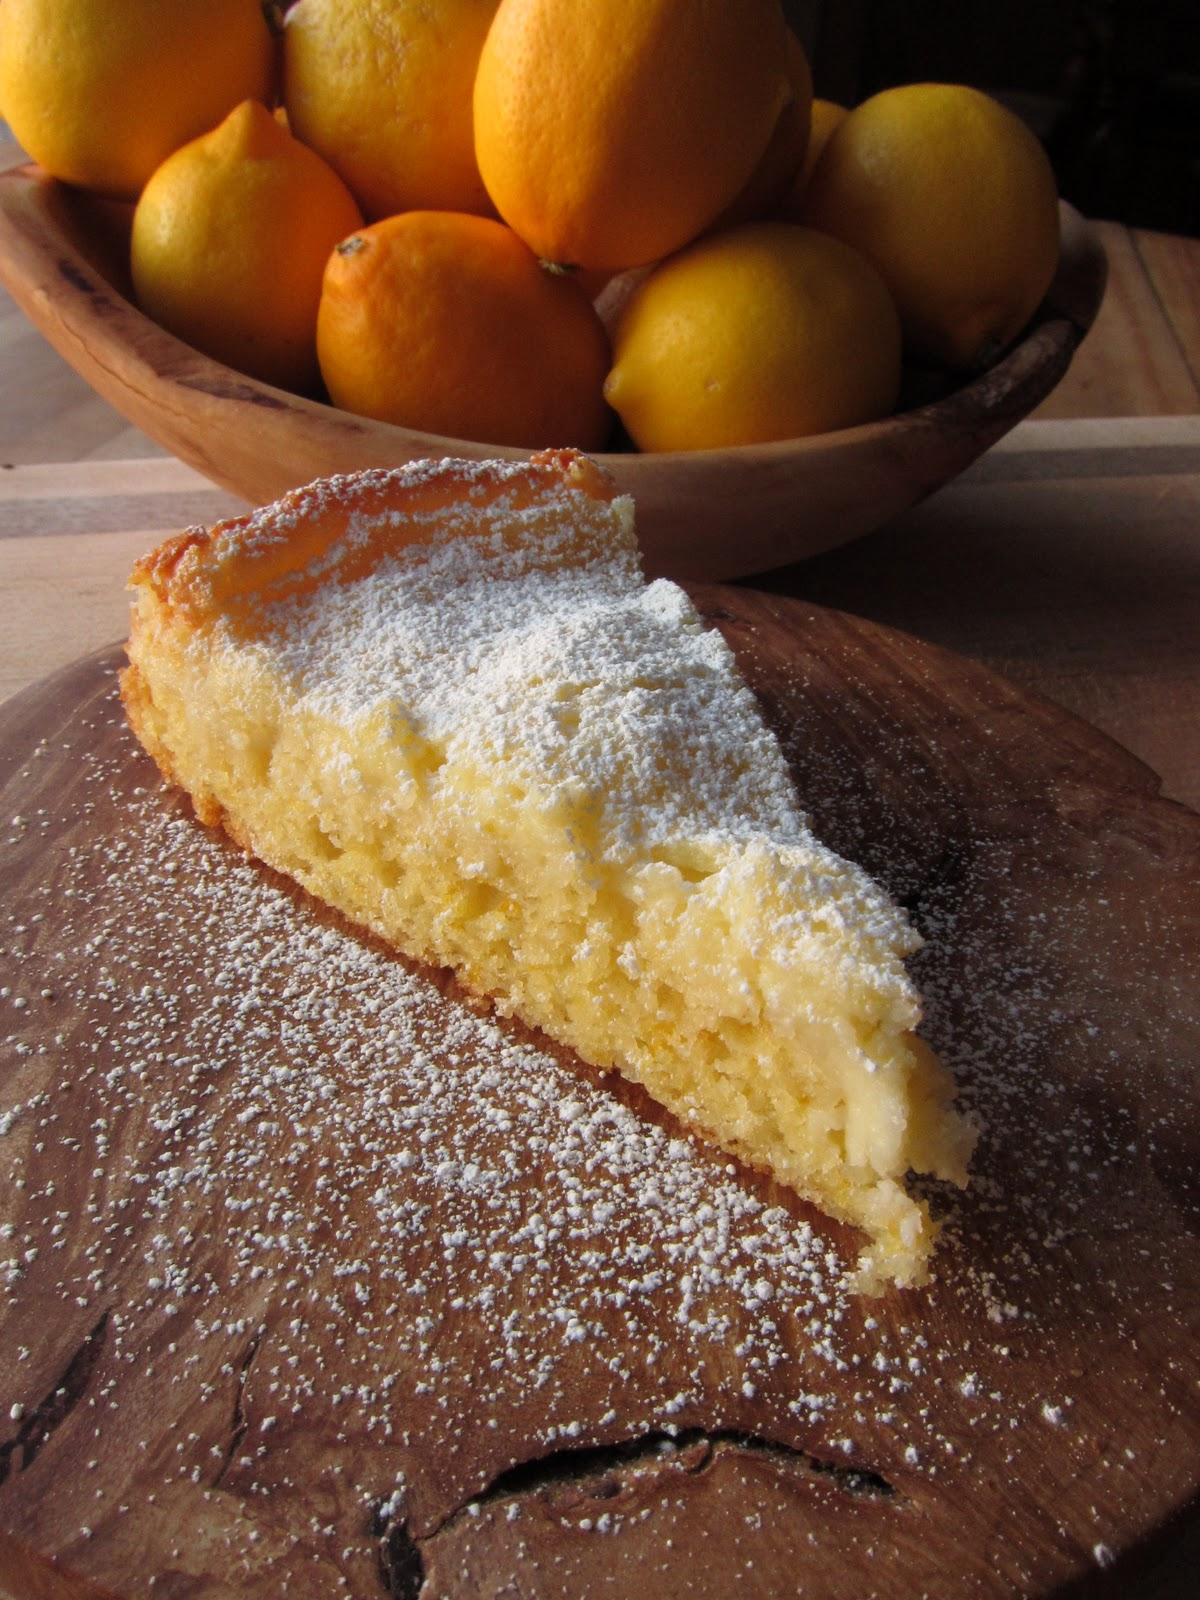 Arctic Garden Studio: Gooey Meyer Lemon Butter Cake